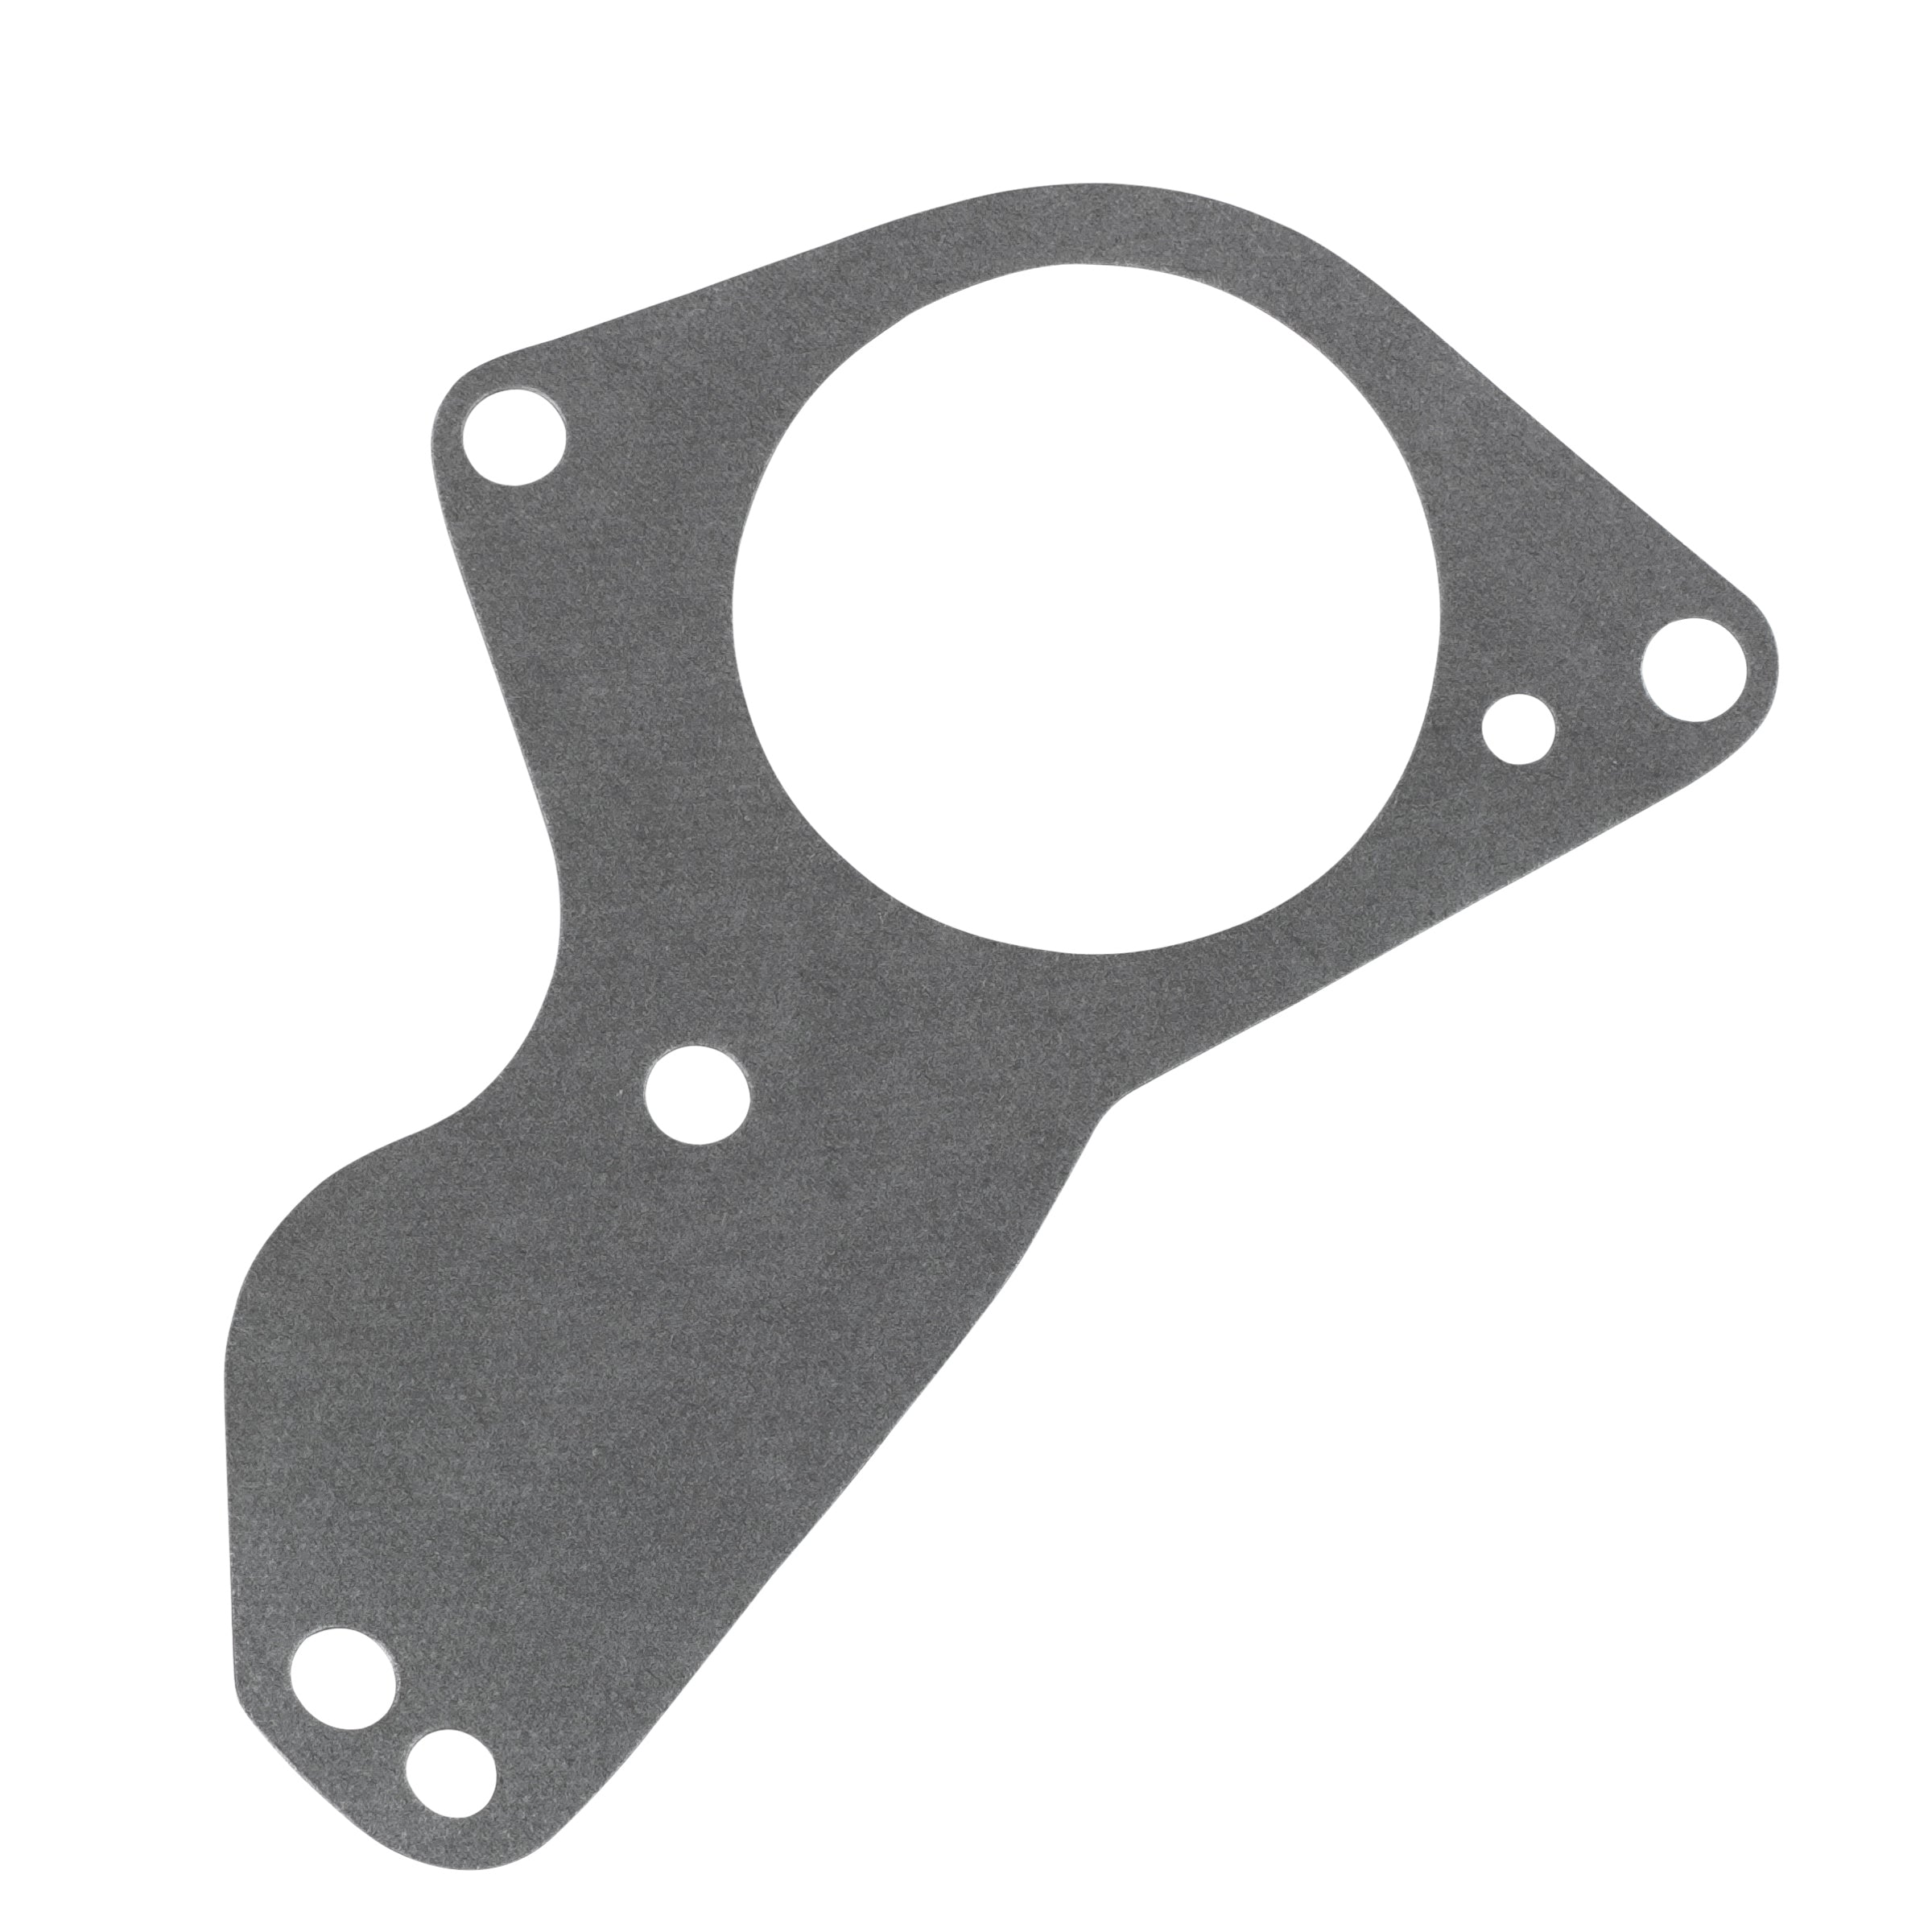 Water Pump Gasket • 1937-48 Ford V-8